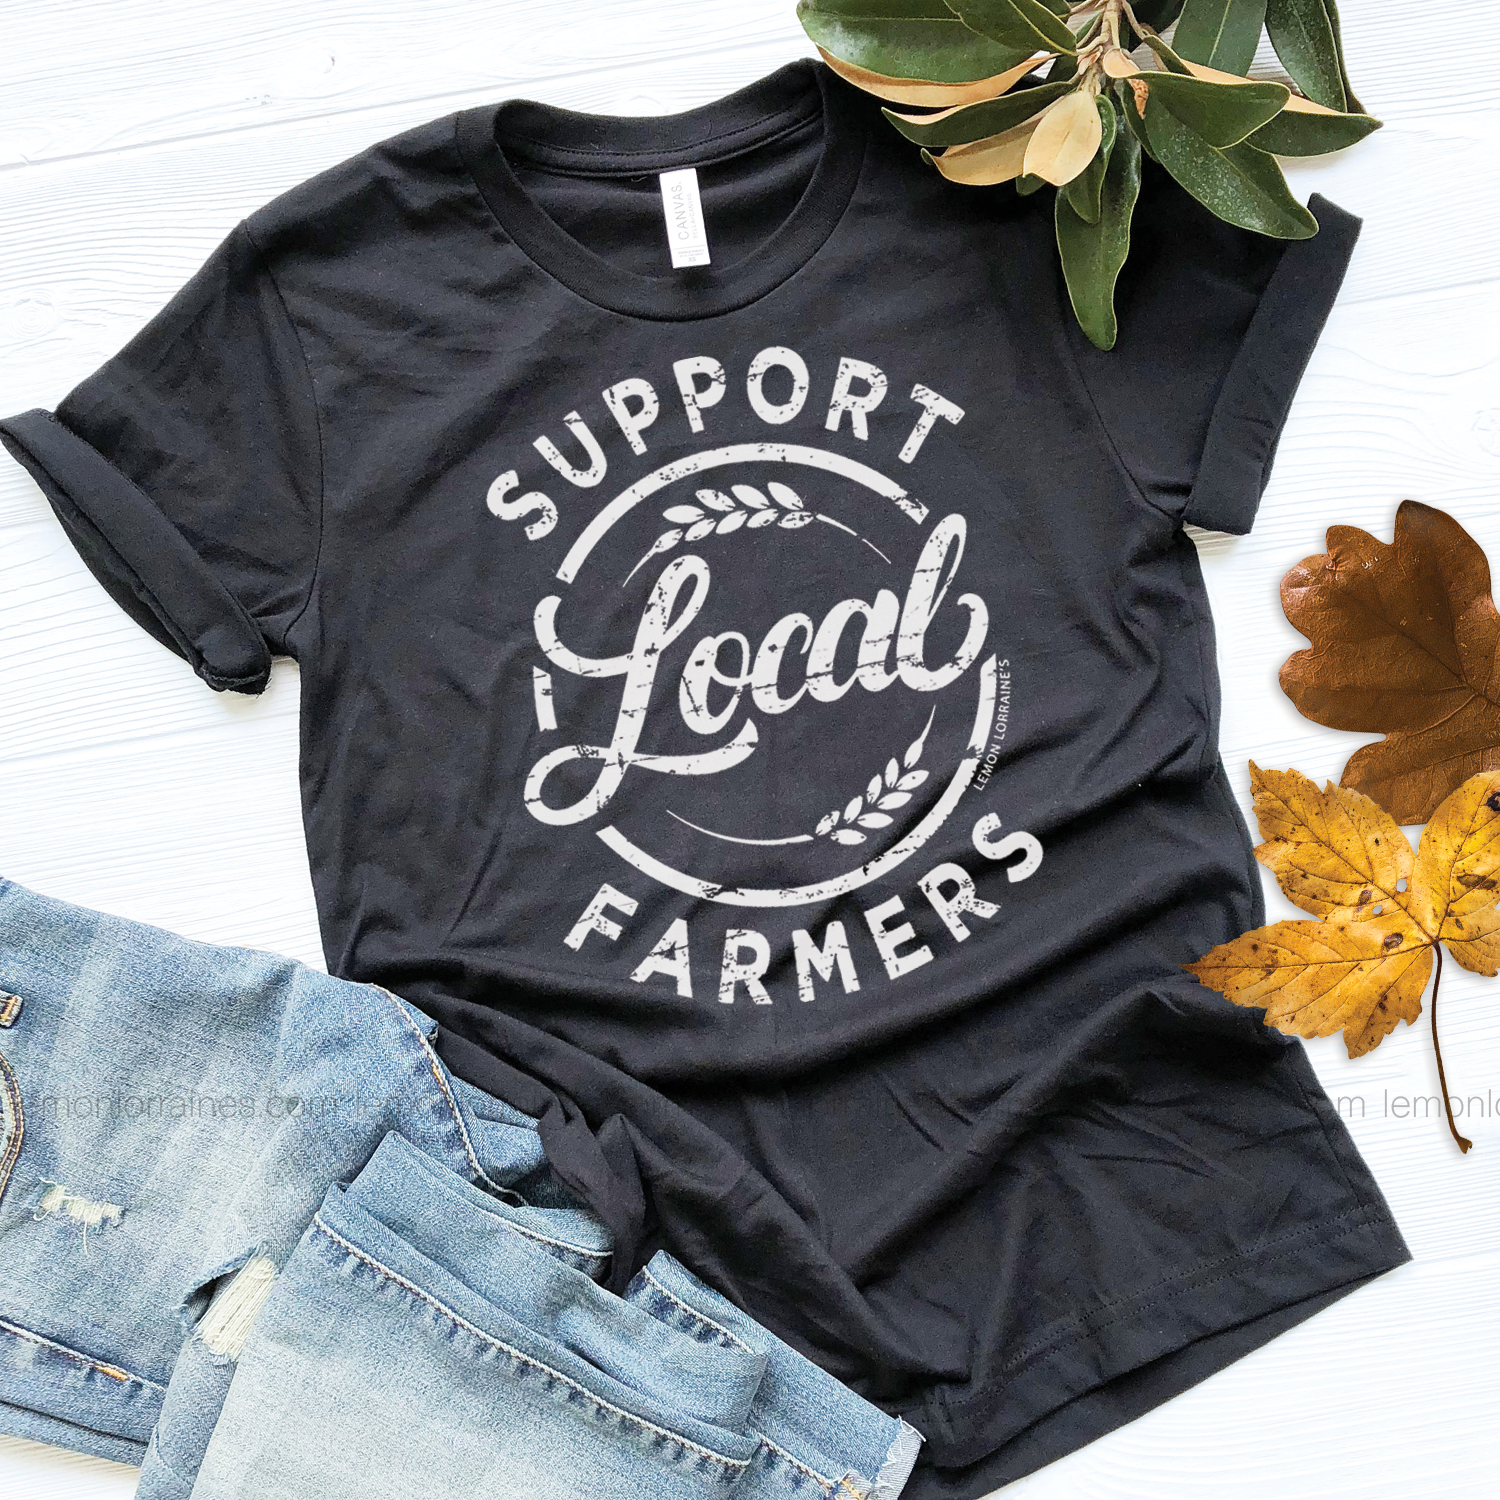 d840e163 Graphic Tee {SUPPORT LOCAL FARMERS} | Products | Graphic tees ...